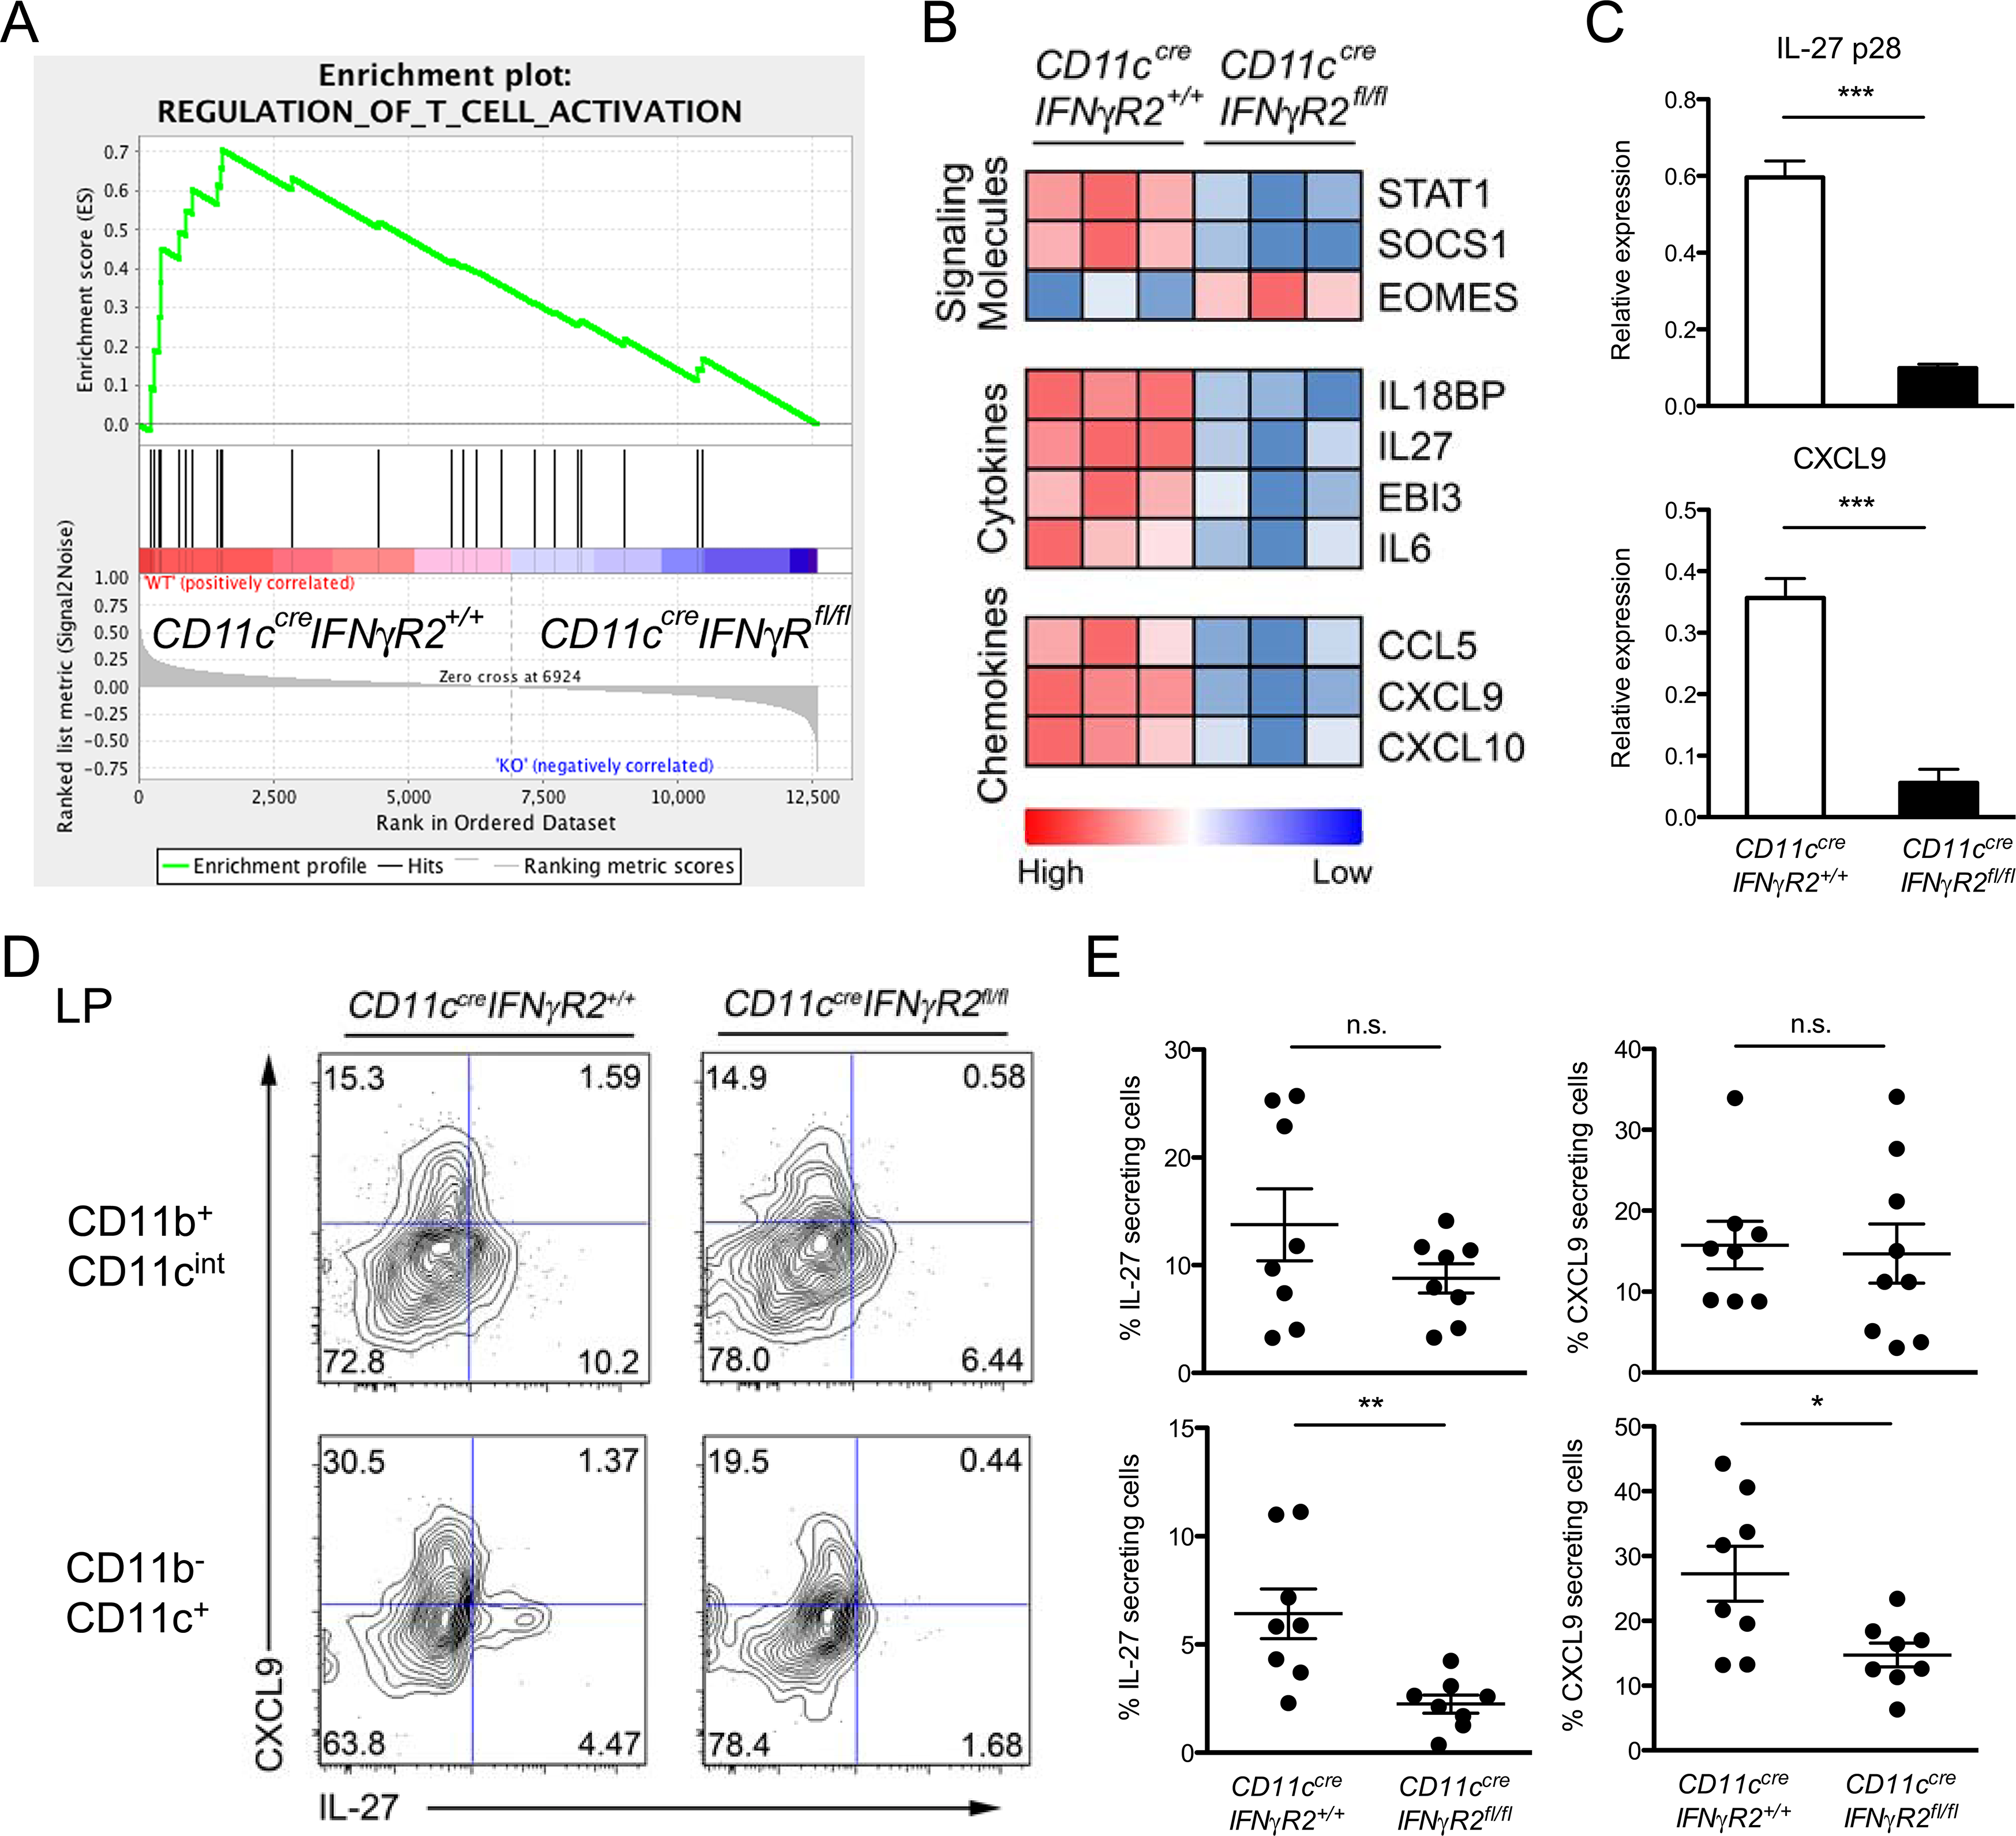 IFNγR2-deficient DCs failed to produce IL-27 as well as other molecules potentially important for Th1-Treg cell differentiation during <i>T</i>. <i>gondii</i> infection.